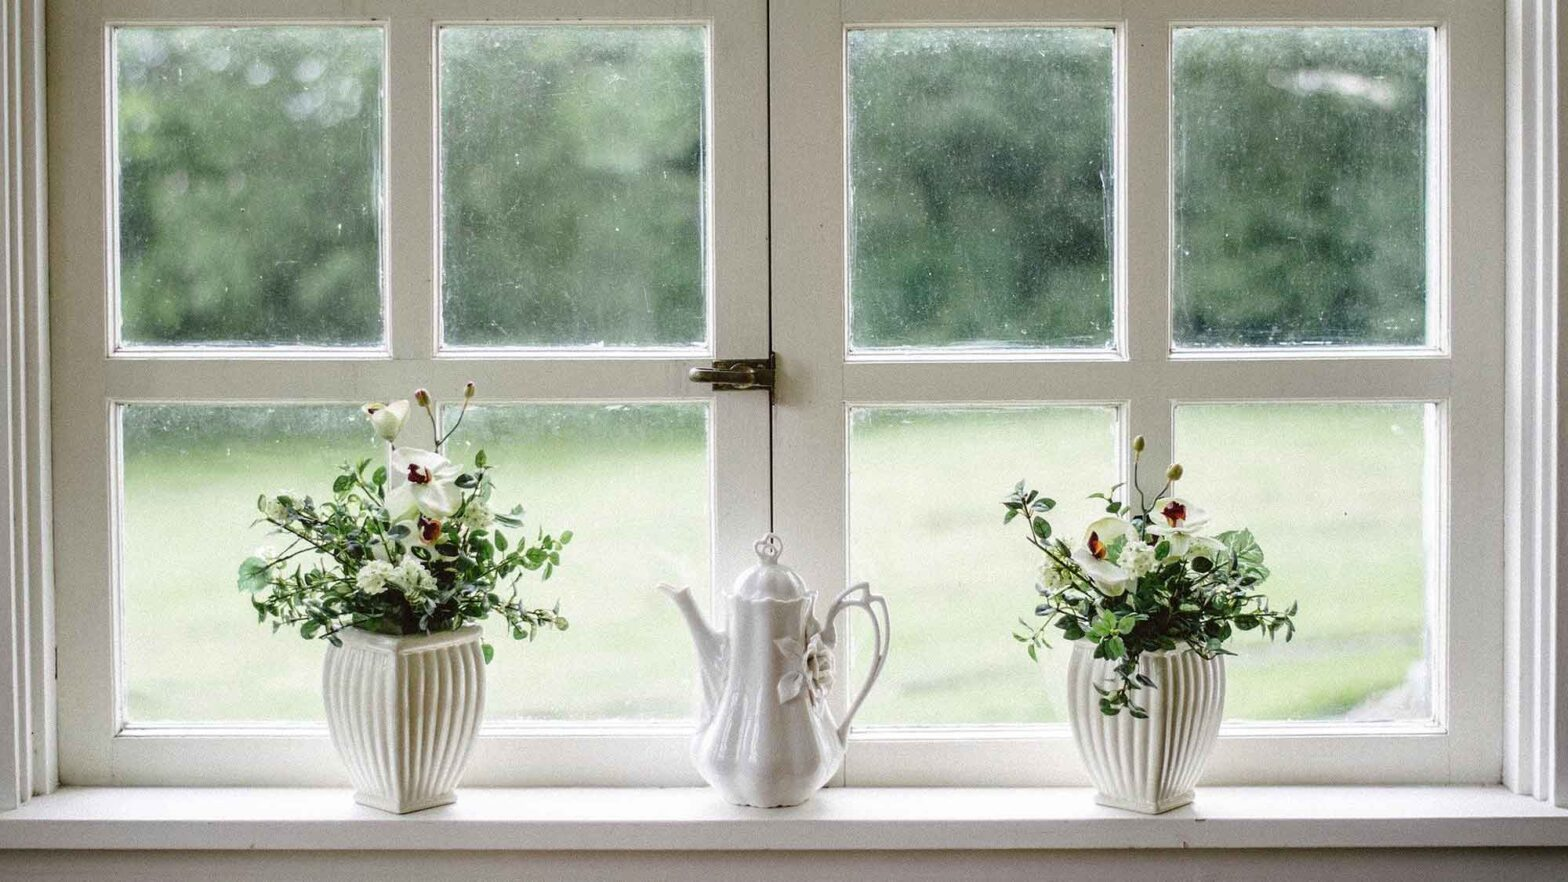 About Double Hung and Single Hung Windows